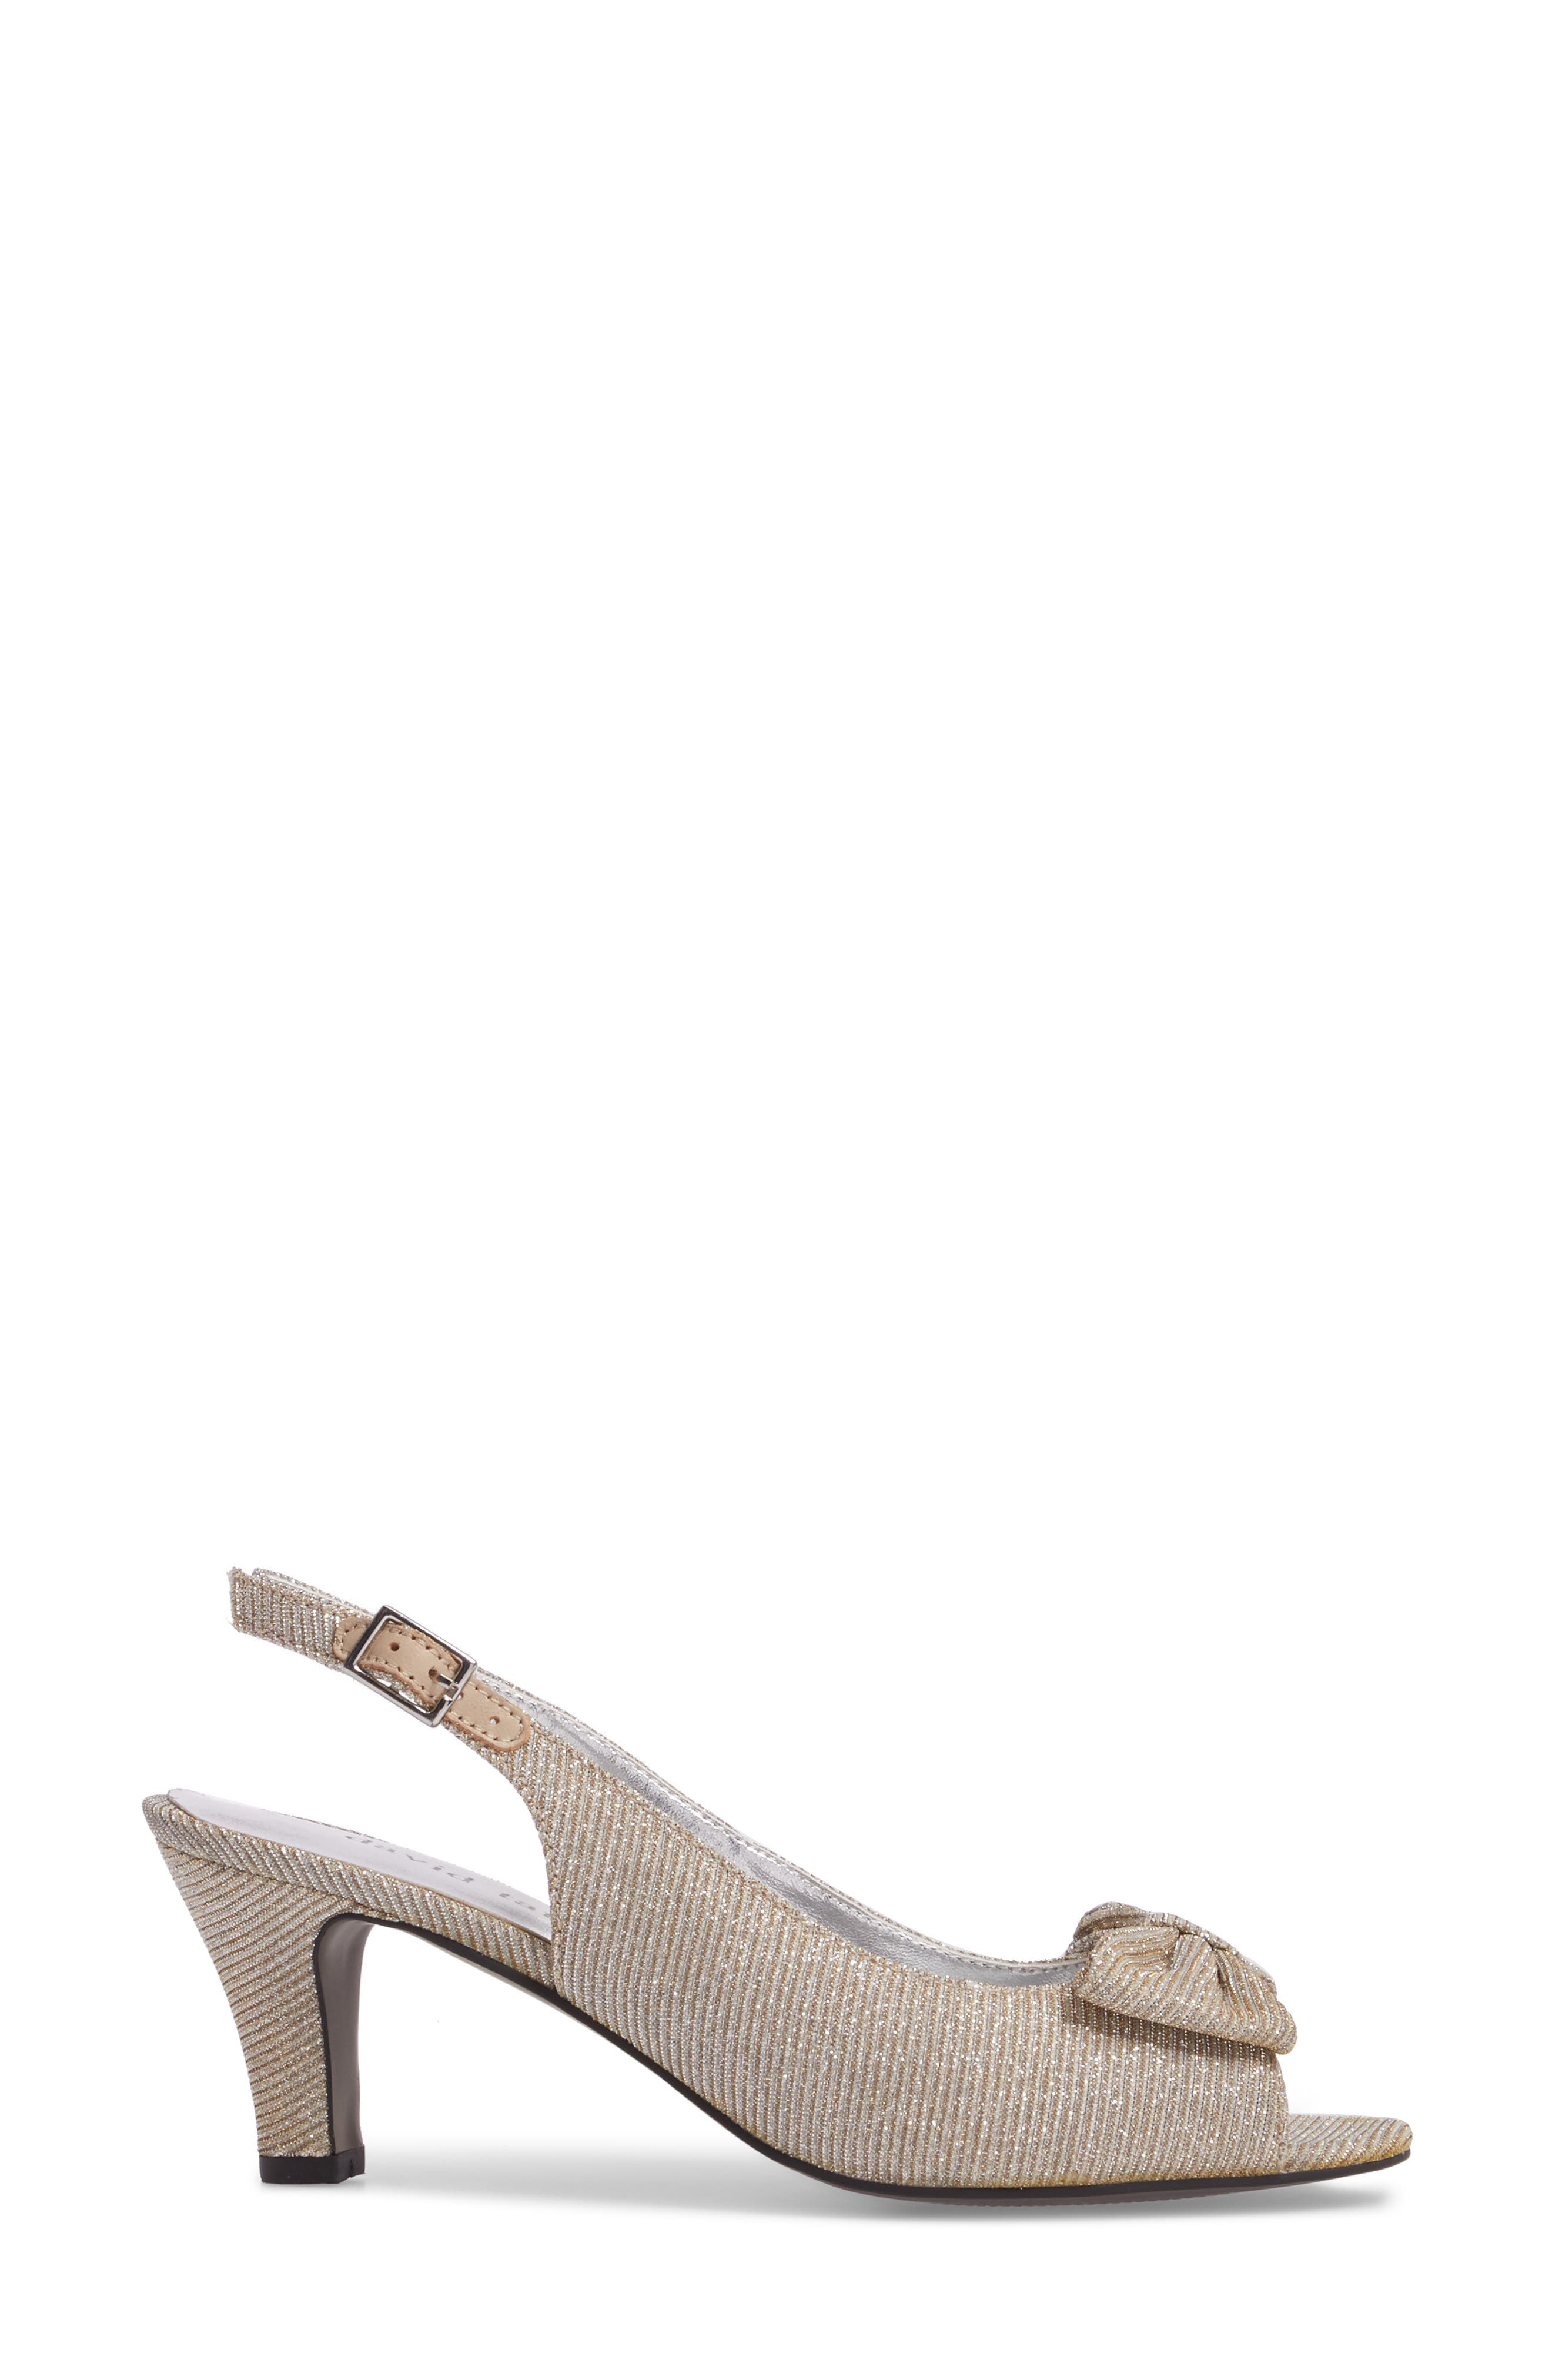 Alternate Image 3  - David Tate Spirit Slingback Sandal (Women)